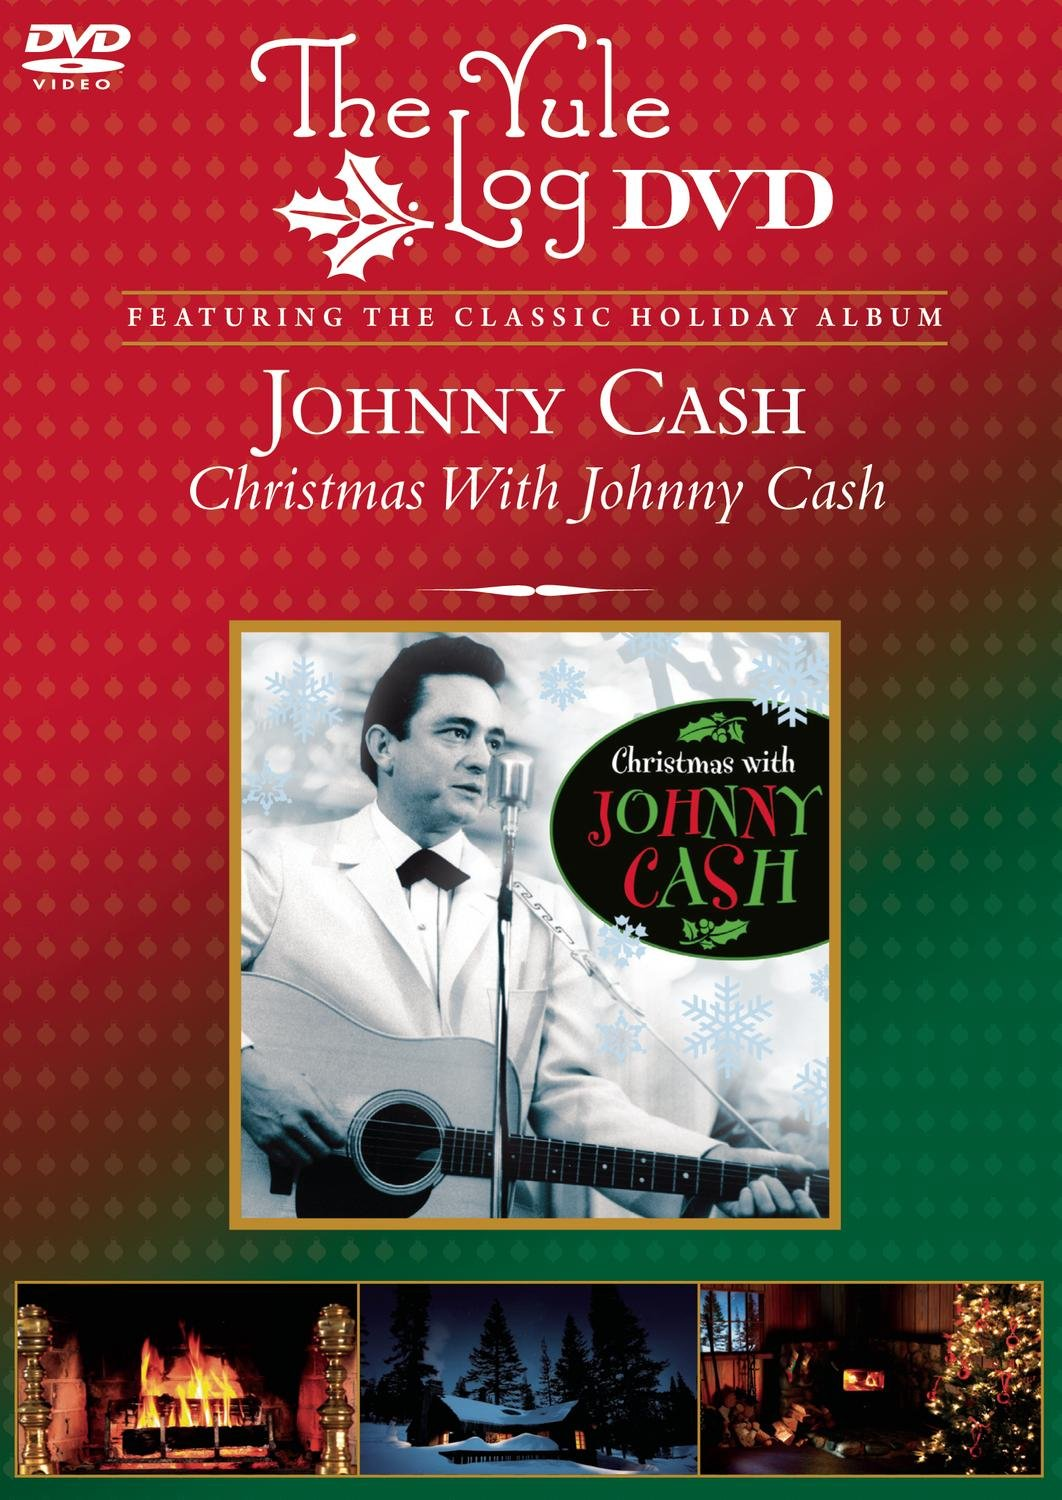 Amazon.com: Christmas With Johnny Cash (The Yule Log DVD): Johnny ...